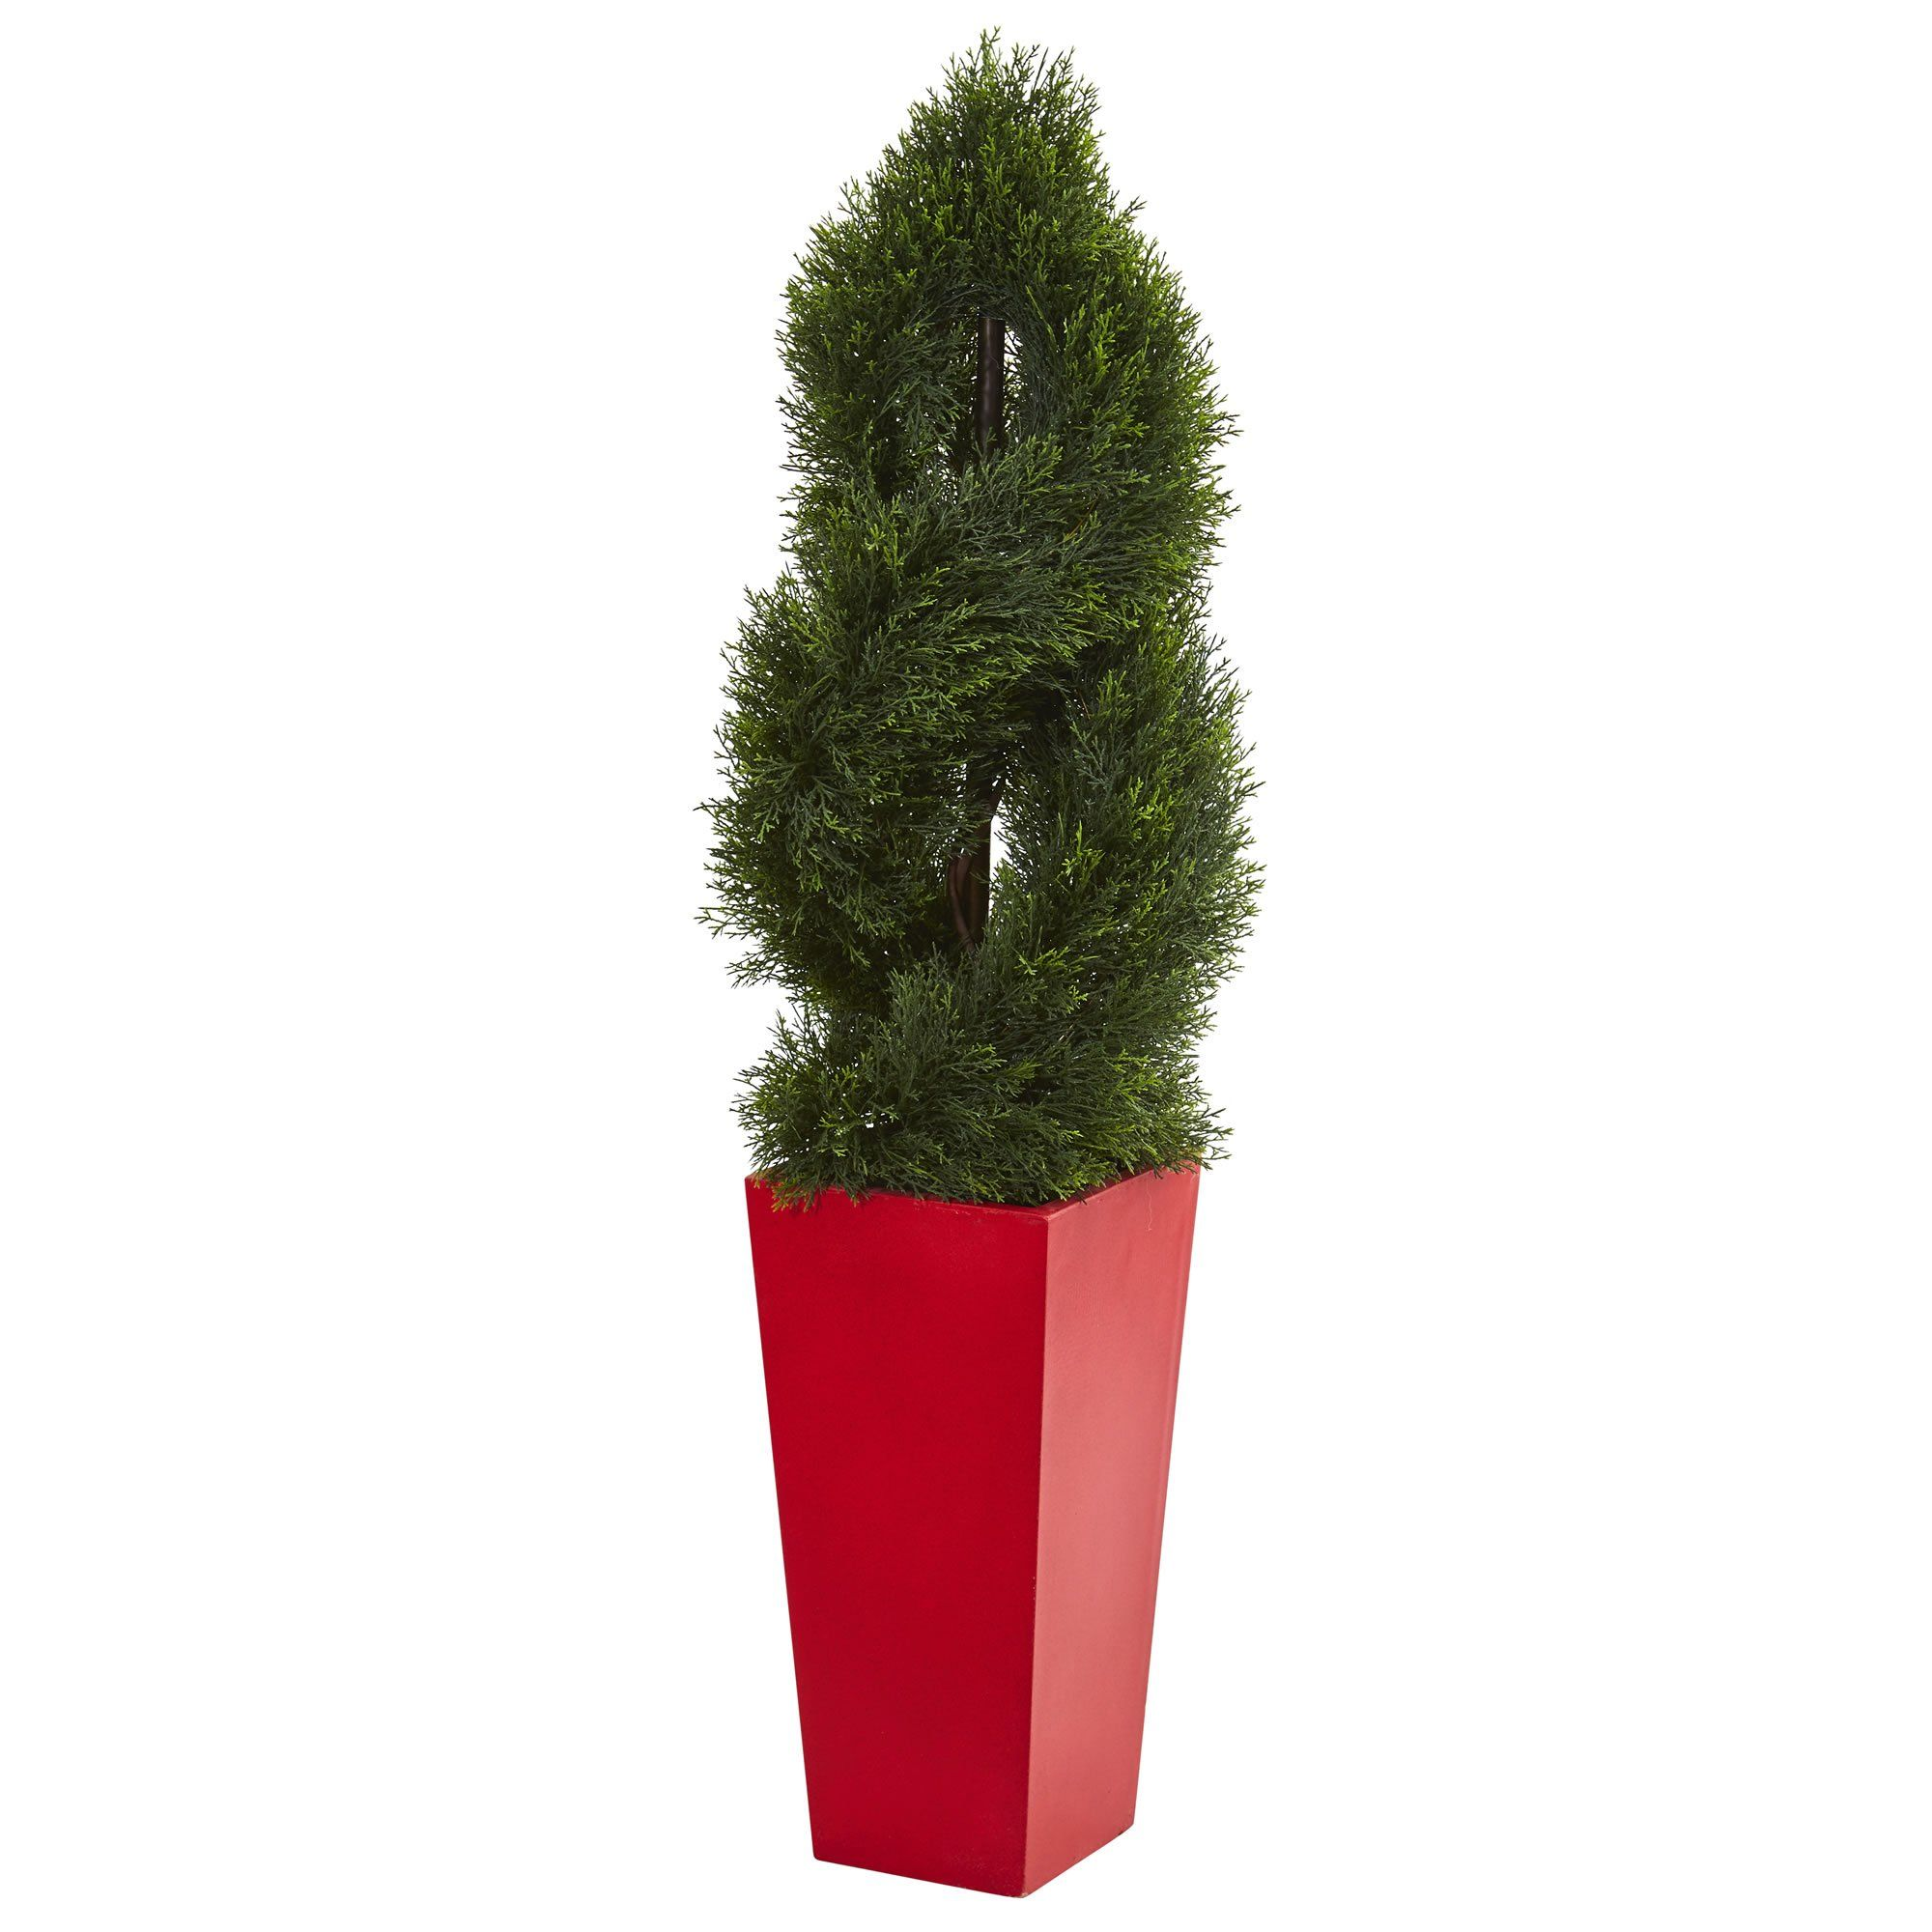 Artificial tree foot double pond cypress spiral tree with red